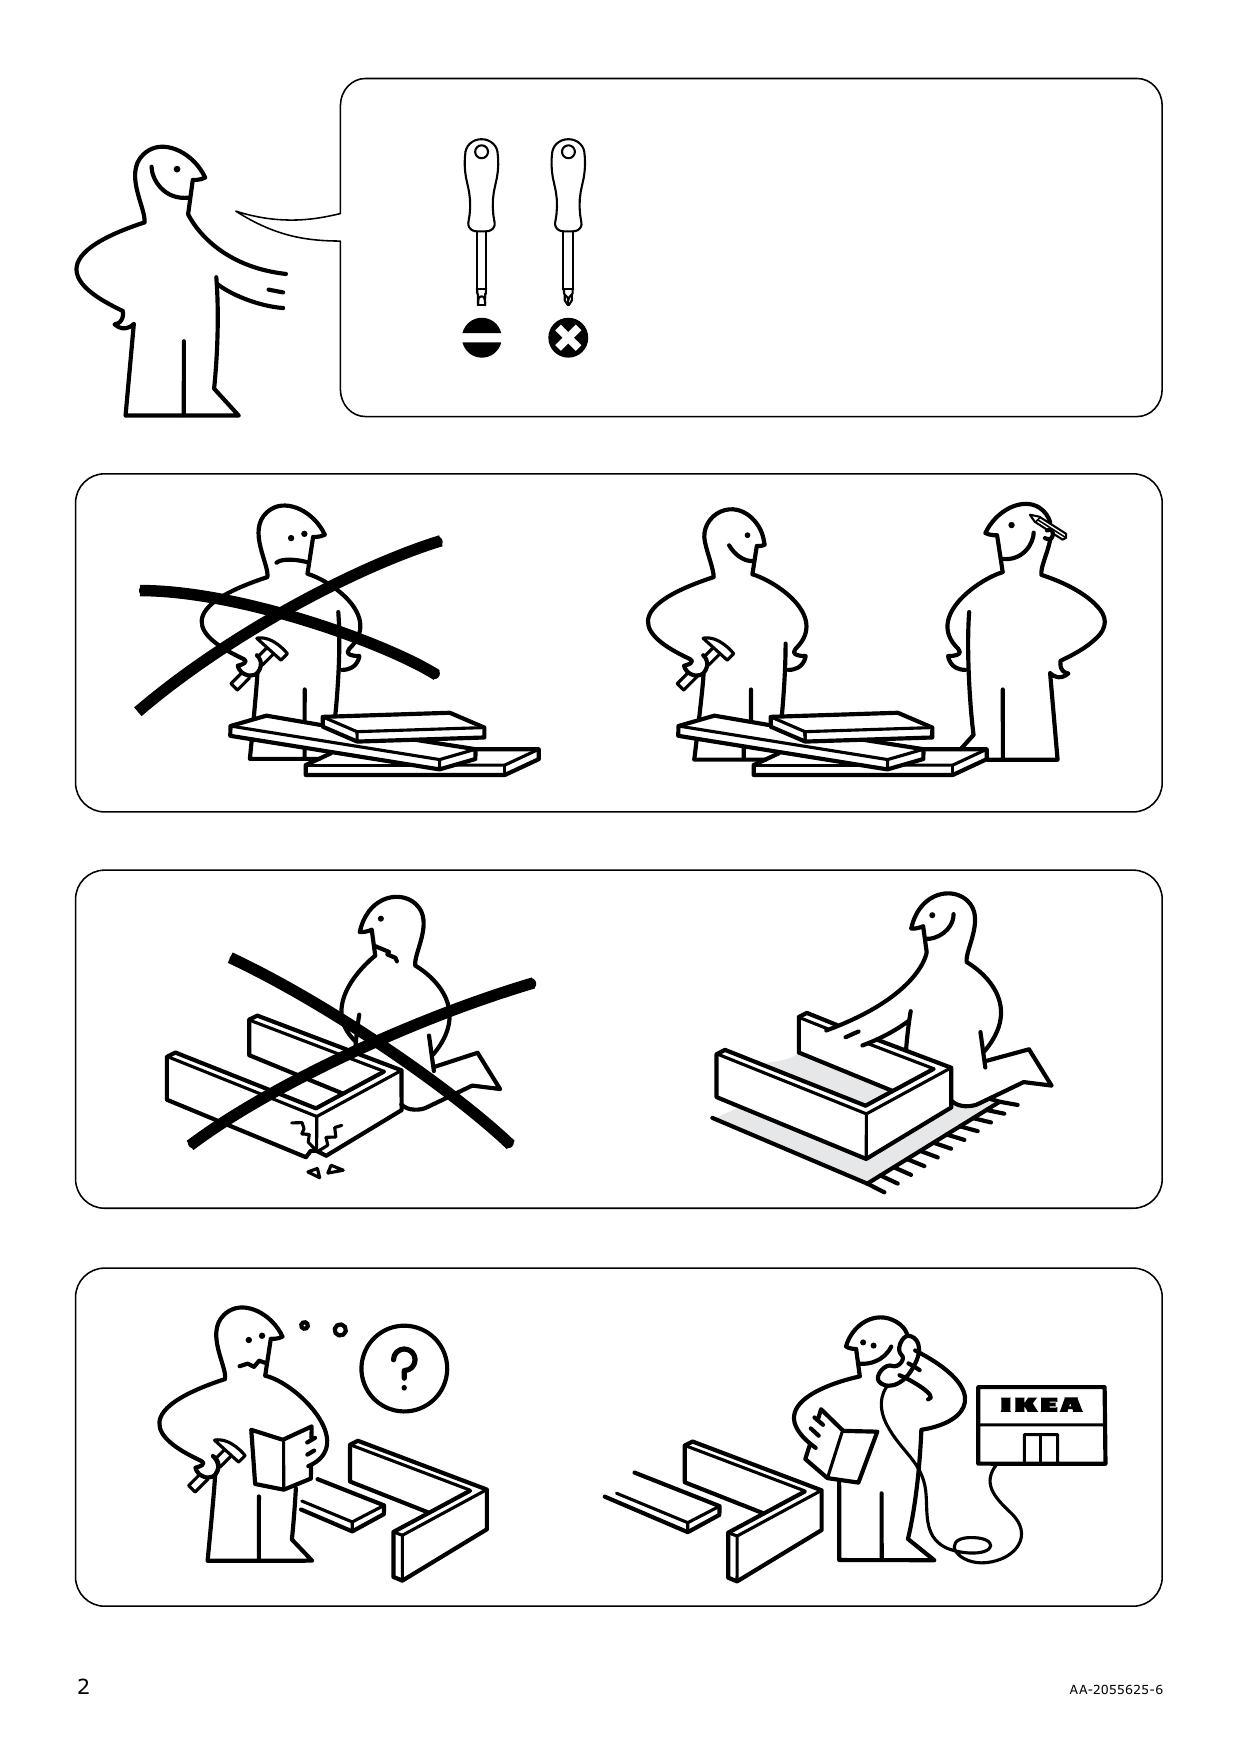 IKEA MALM Storage bed Assembly Instruction - 2